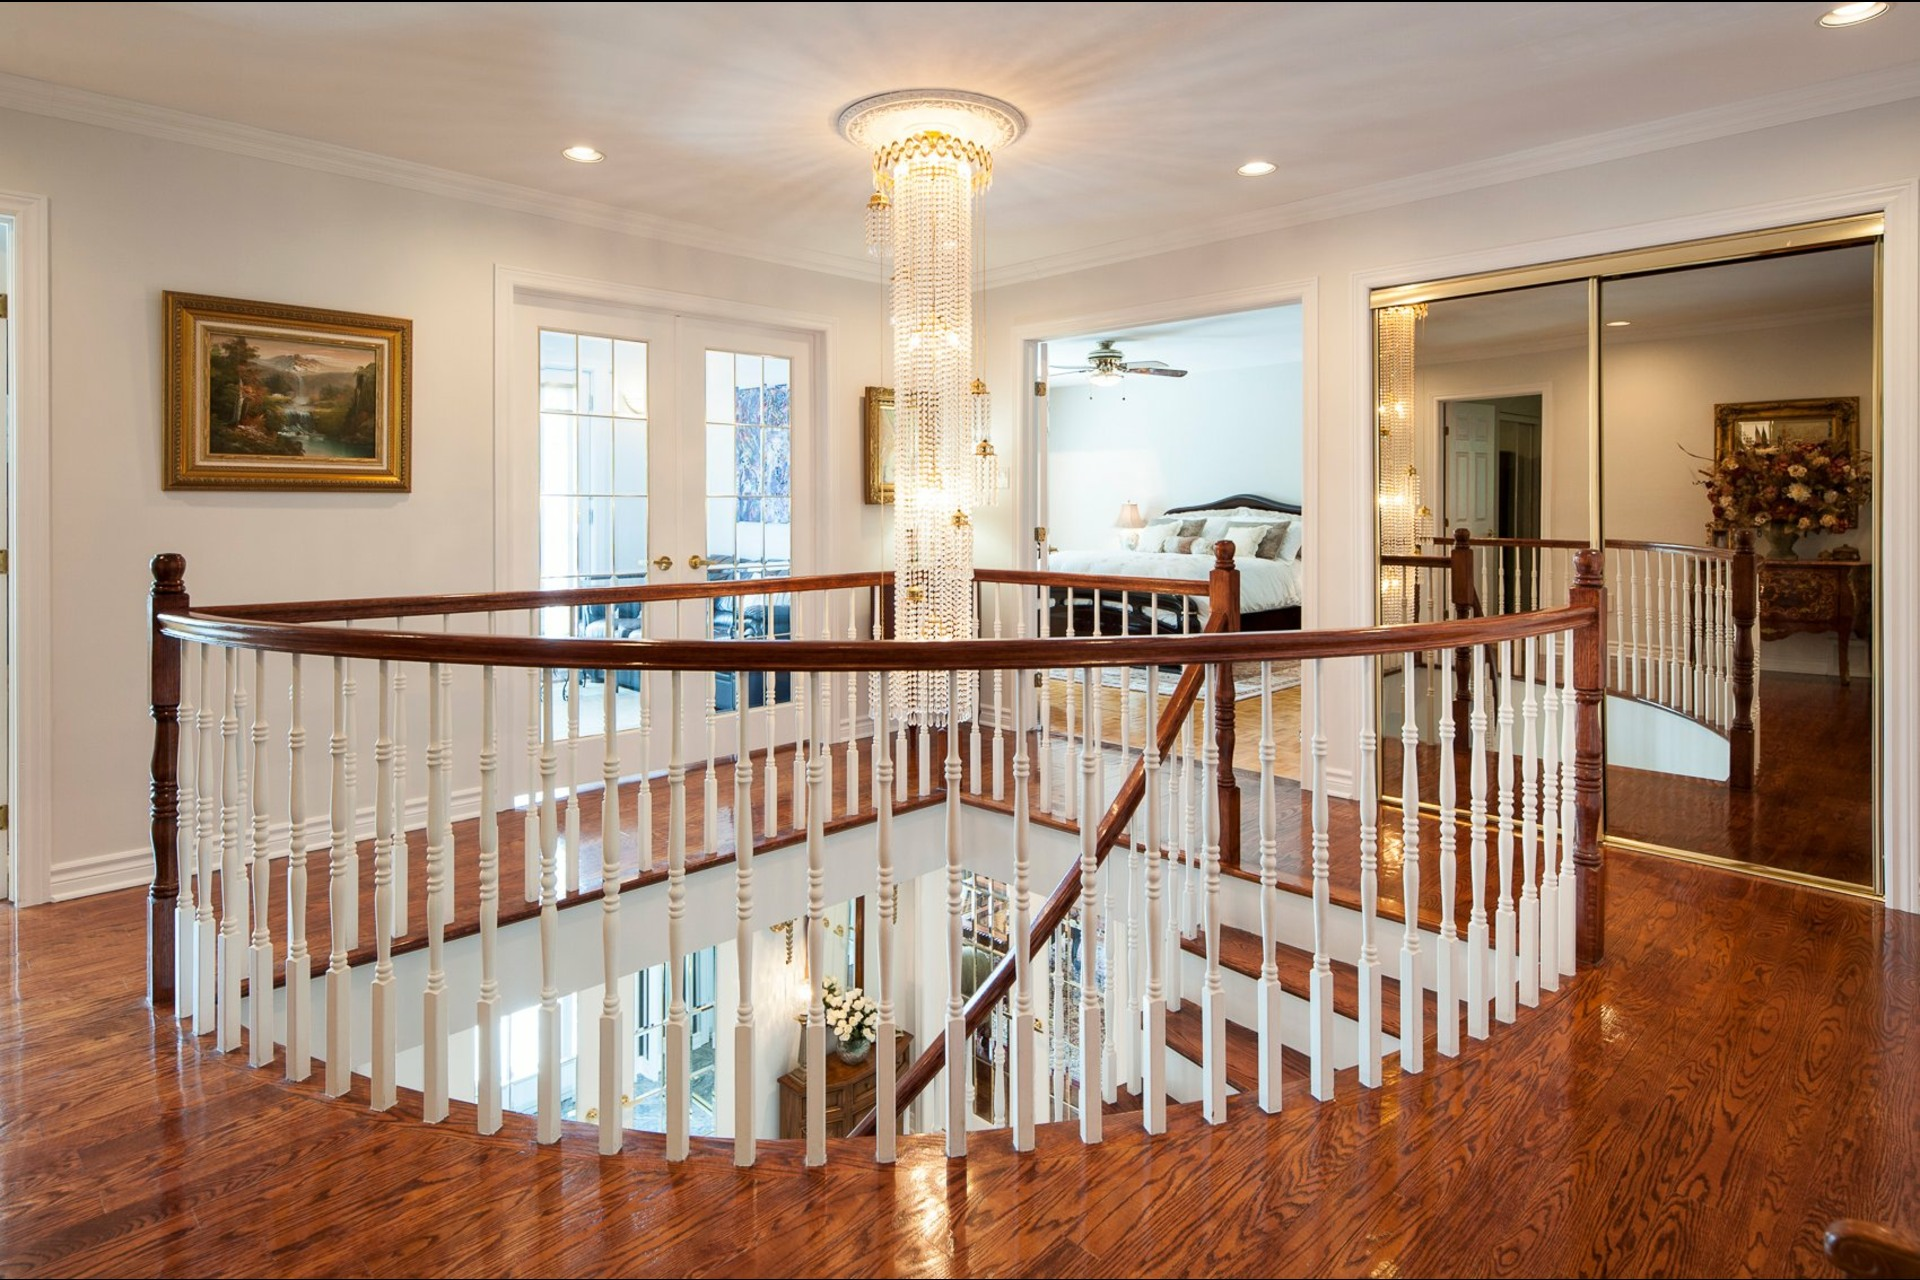 image 17 - House For sale Beaconsfield